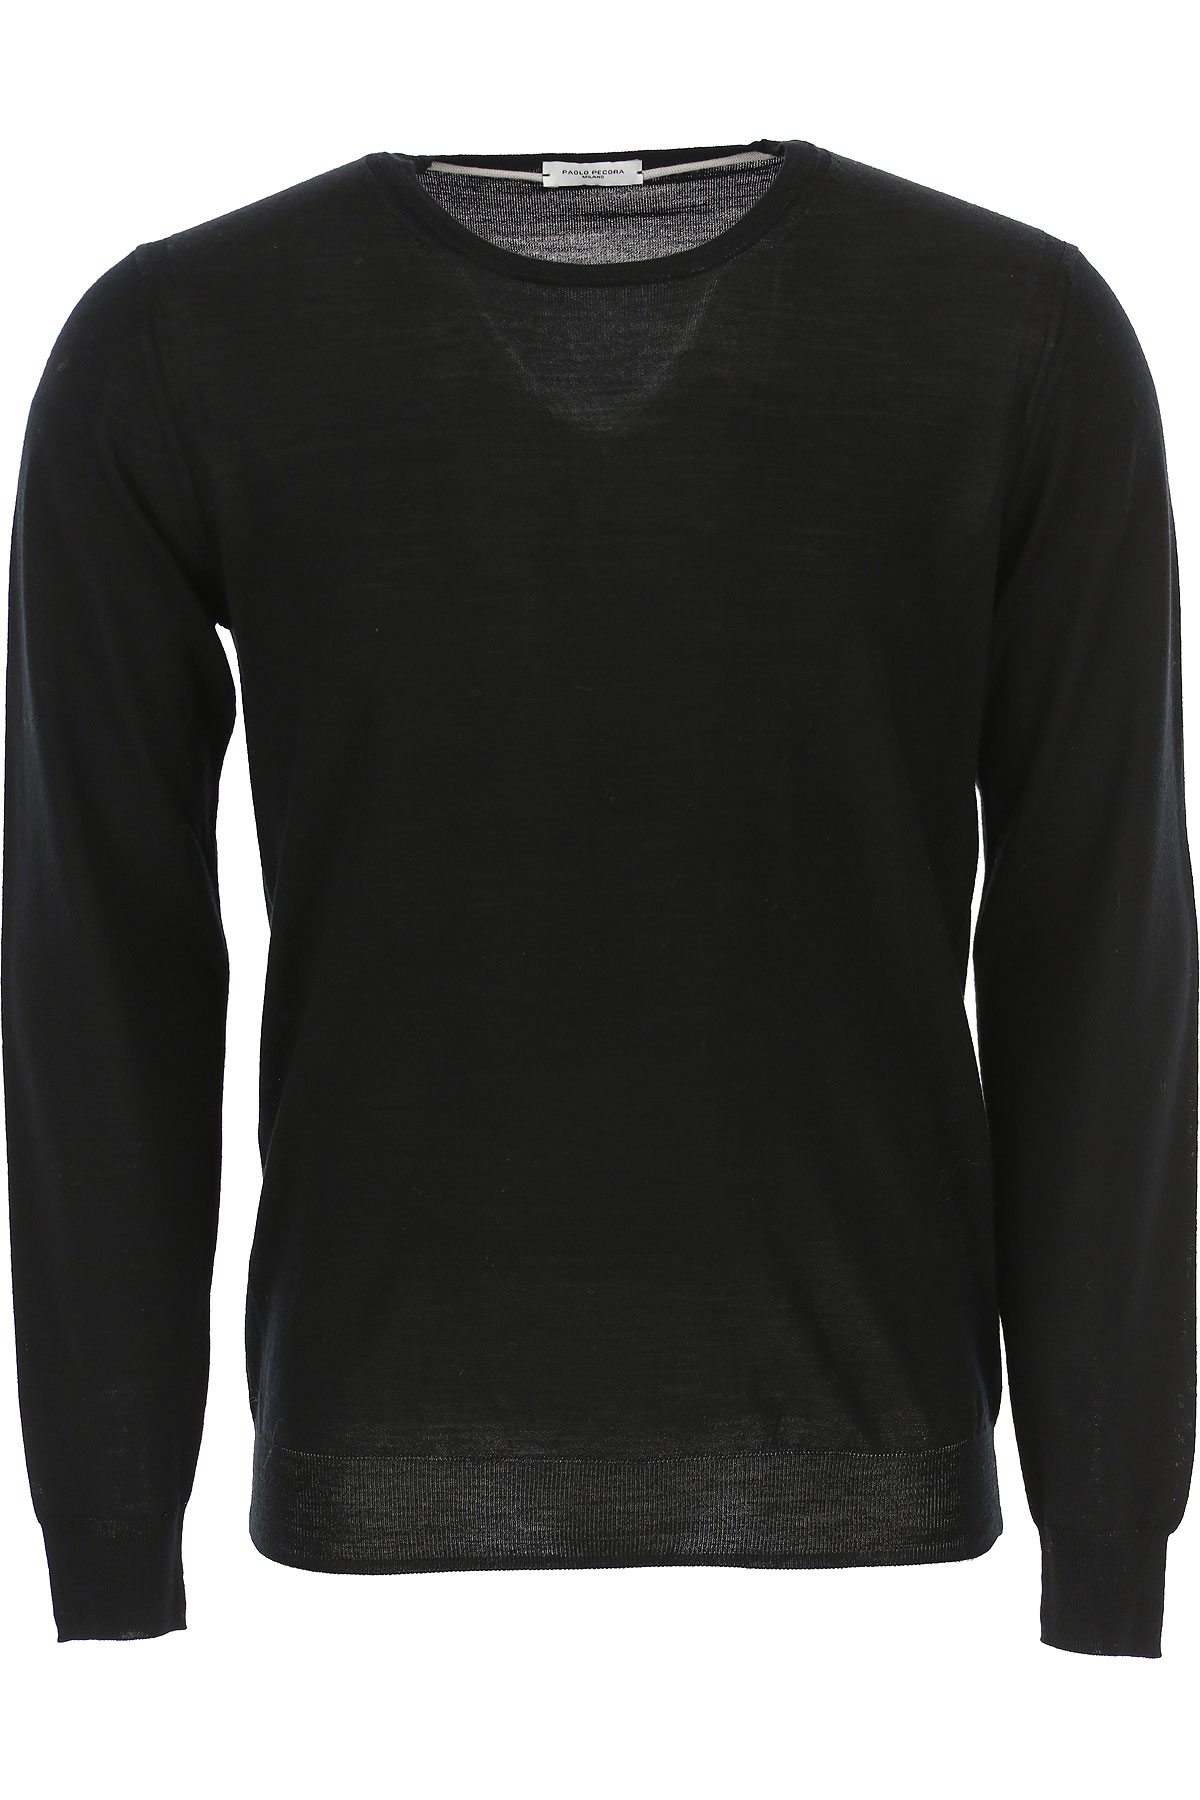 Roberto Collina Sweater for Men Jumper, Black, Wool, 2019, S XL